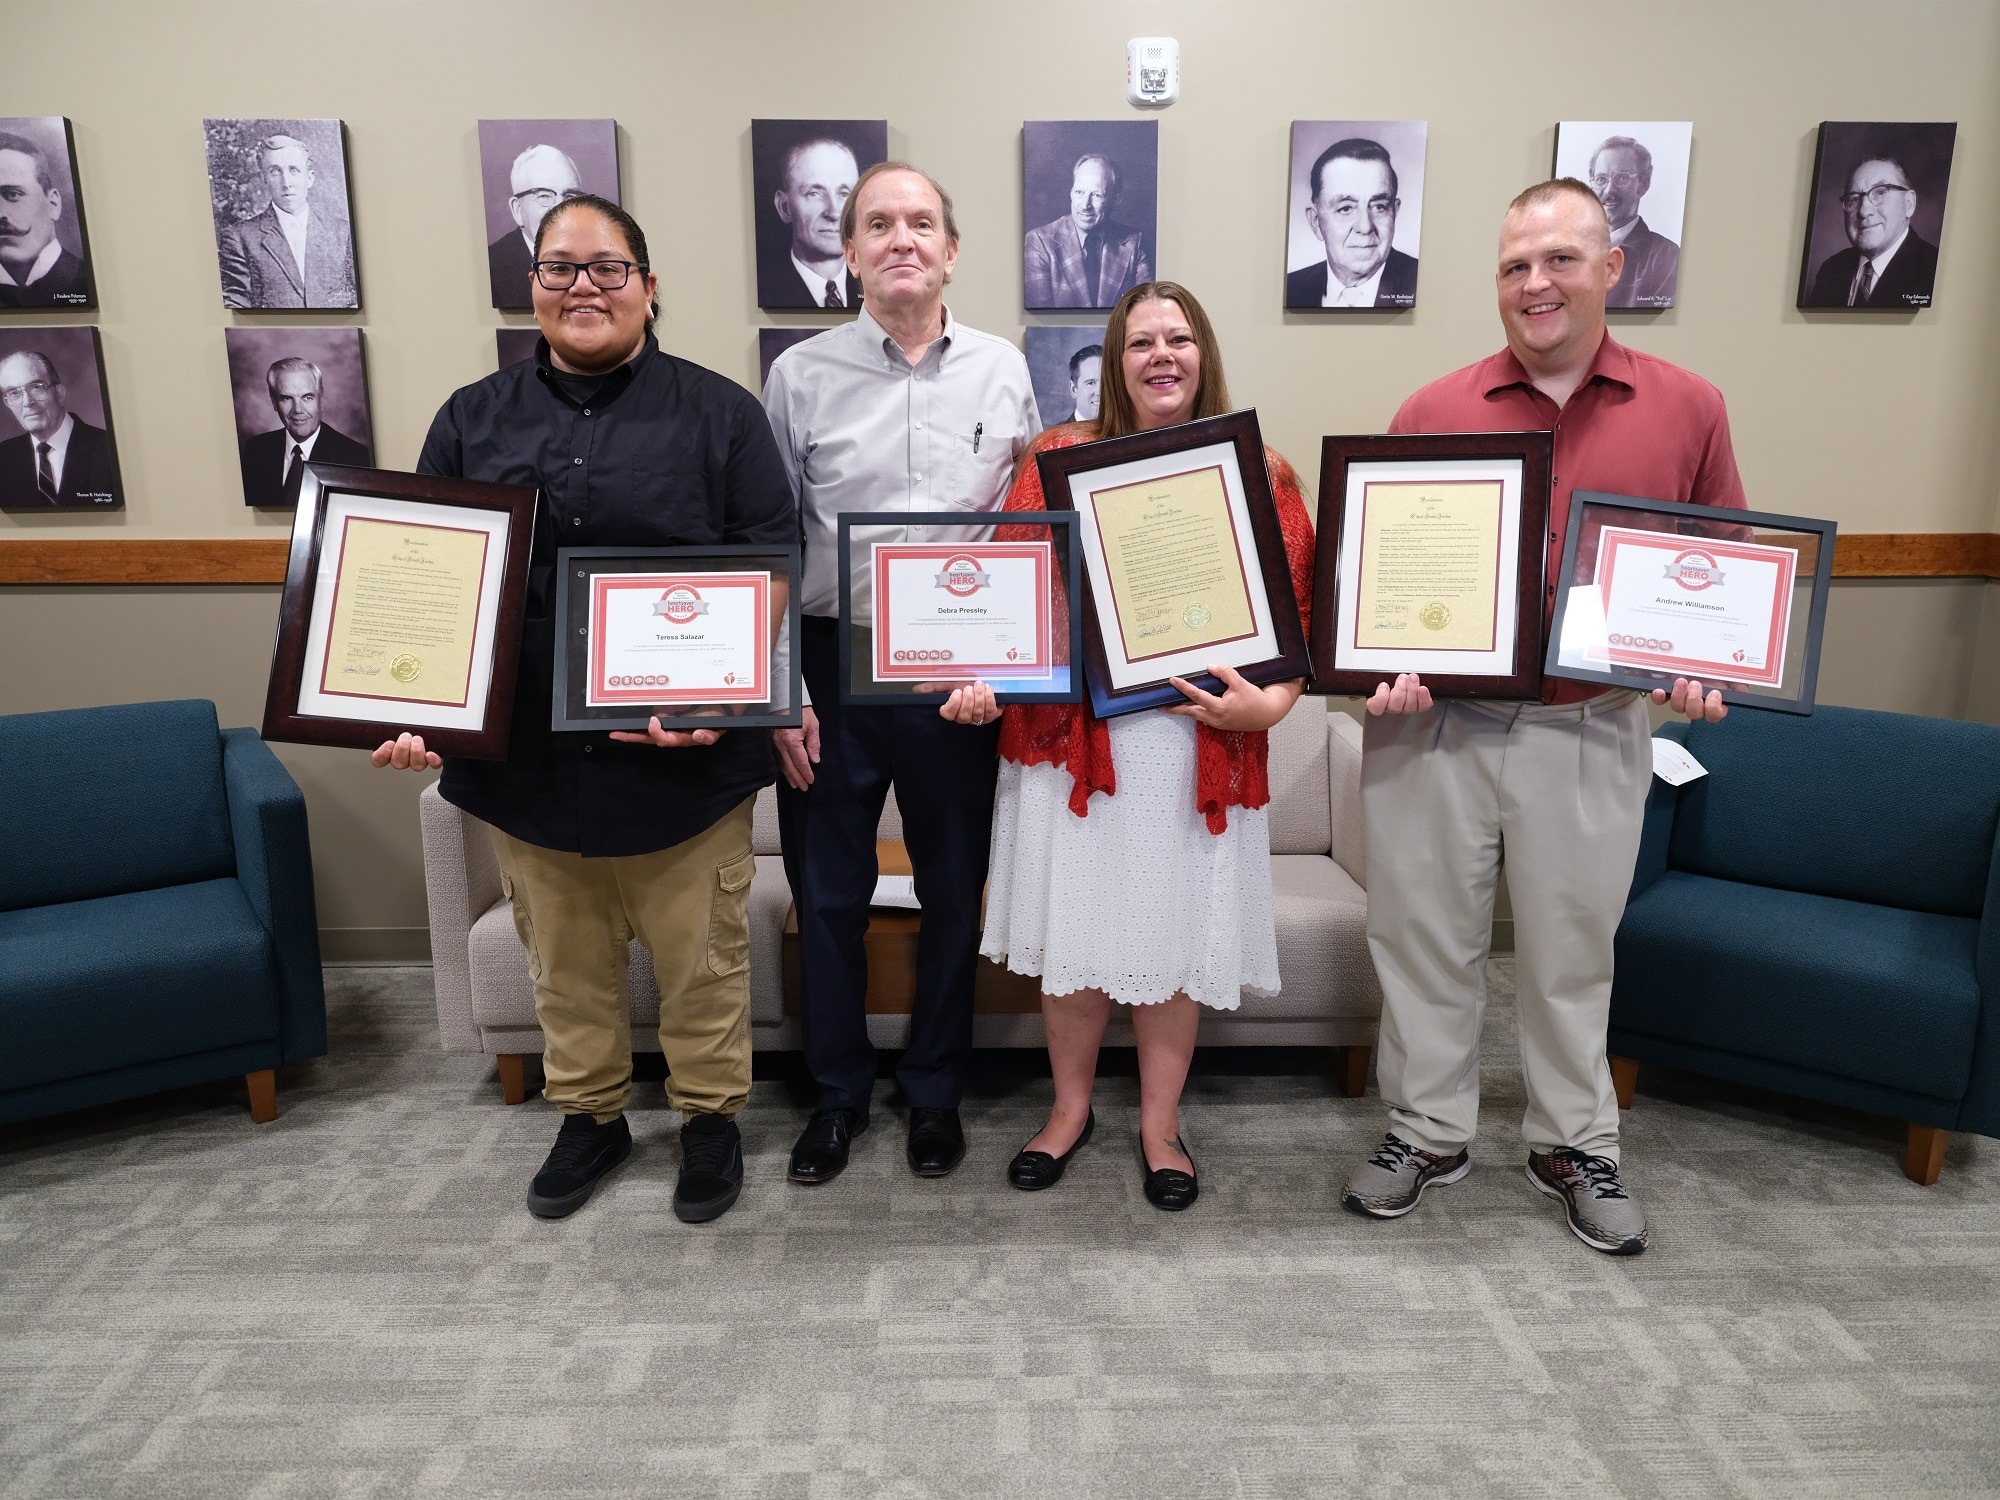 Merit Employees with Awards - Recognized for Saving Co-Worker's Life